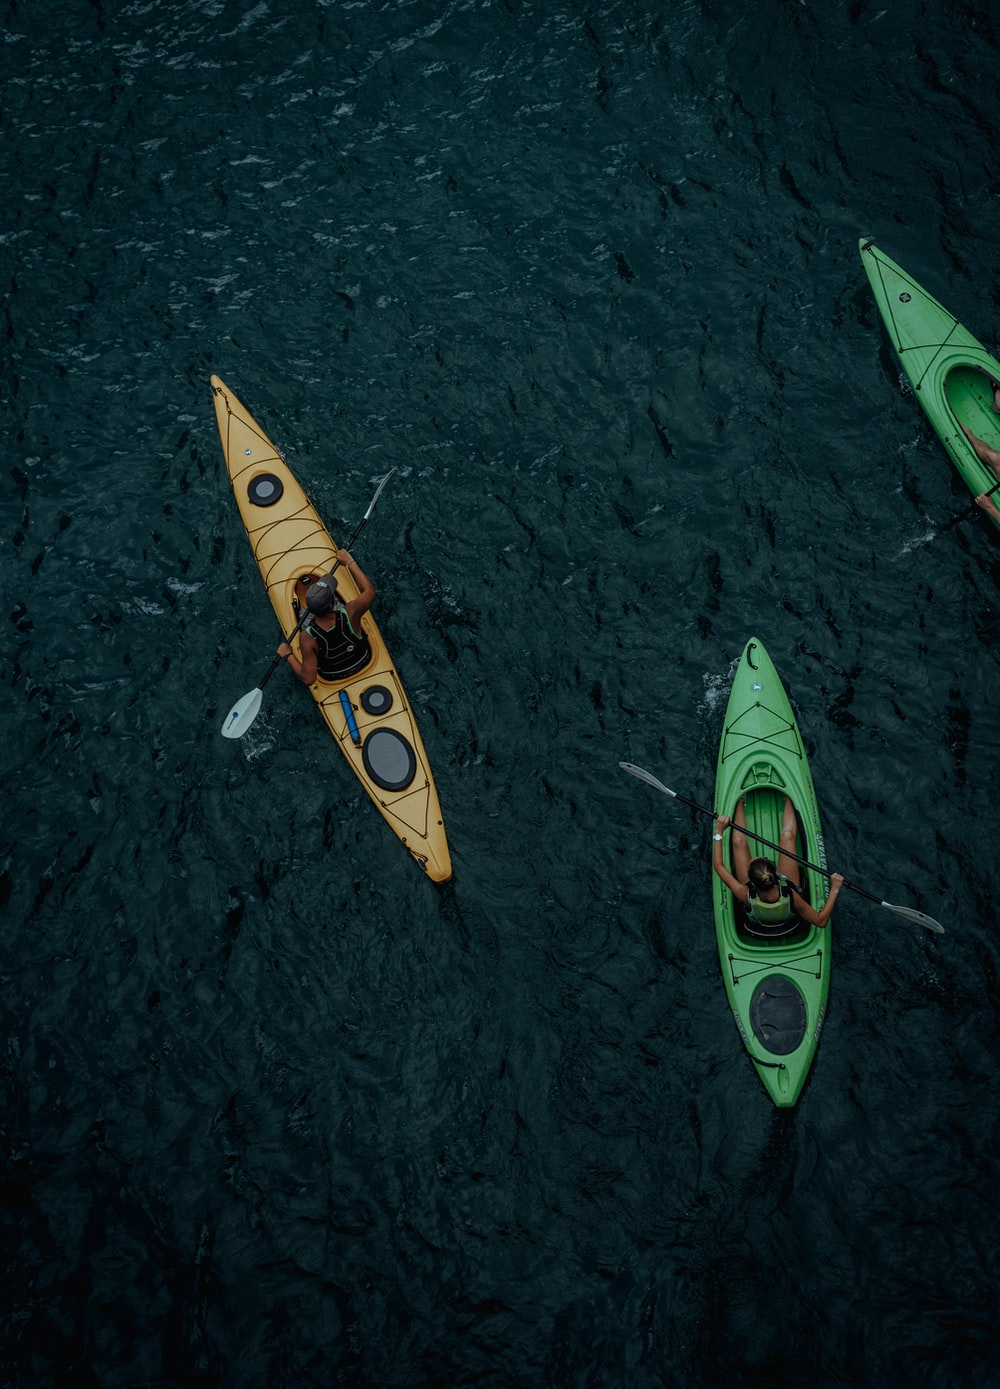 three people kayaking on body of water